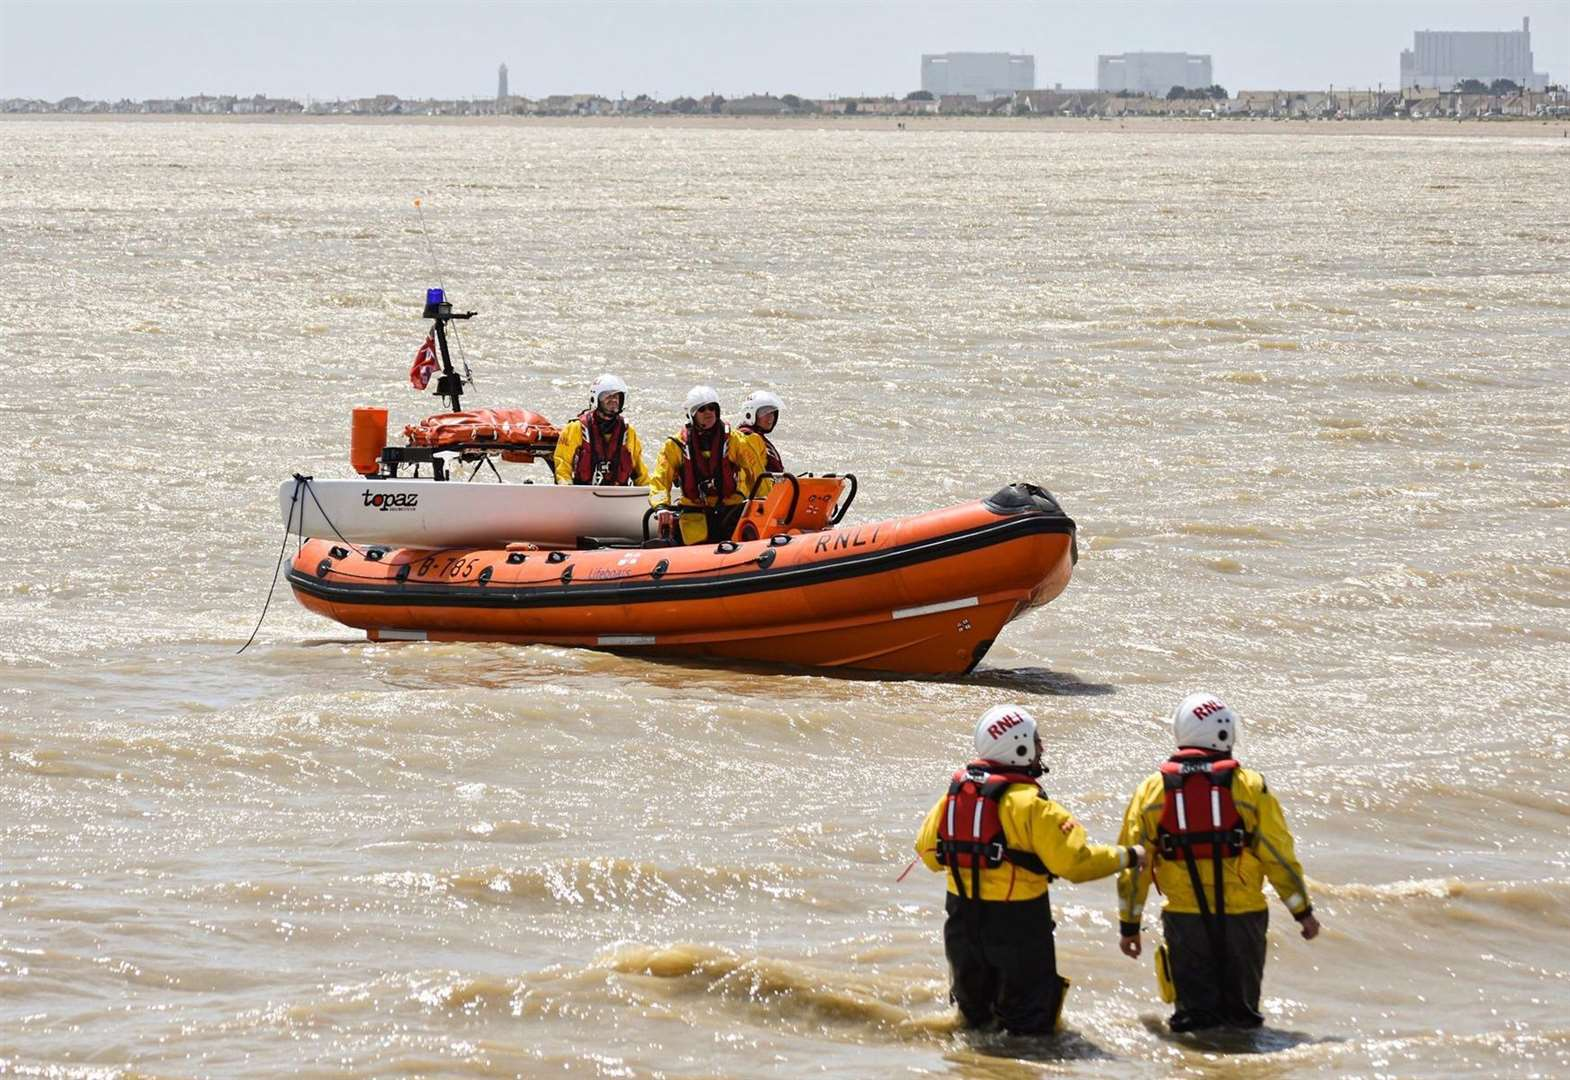 One man in hospital after dinghy capsizes